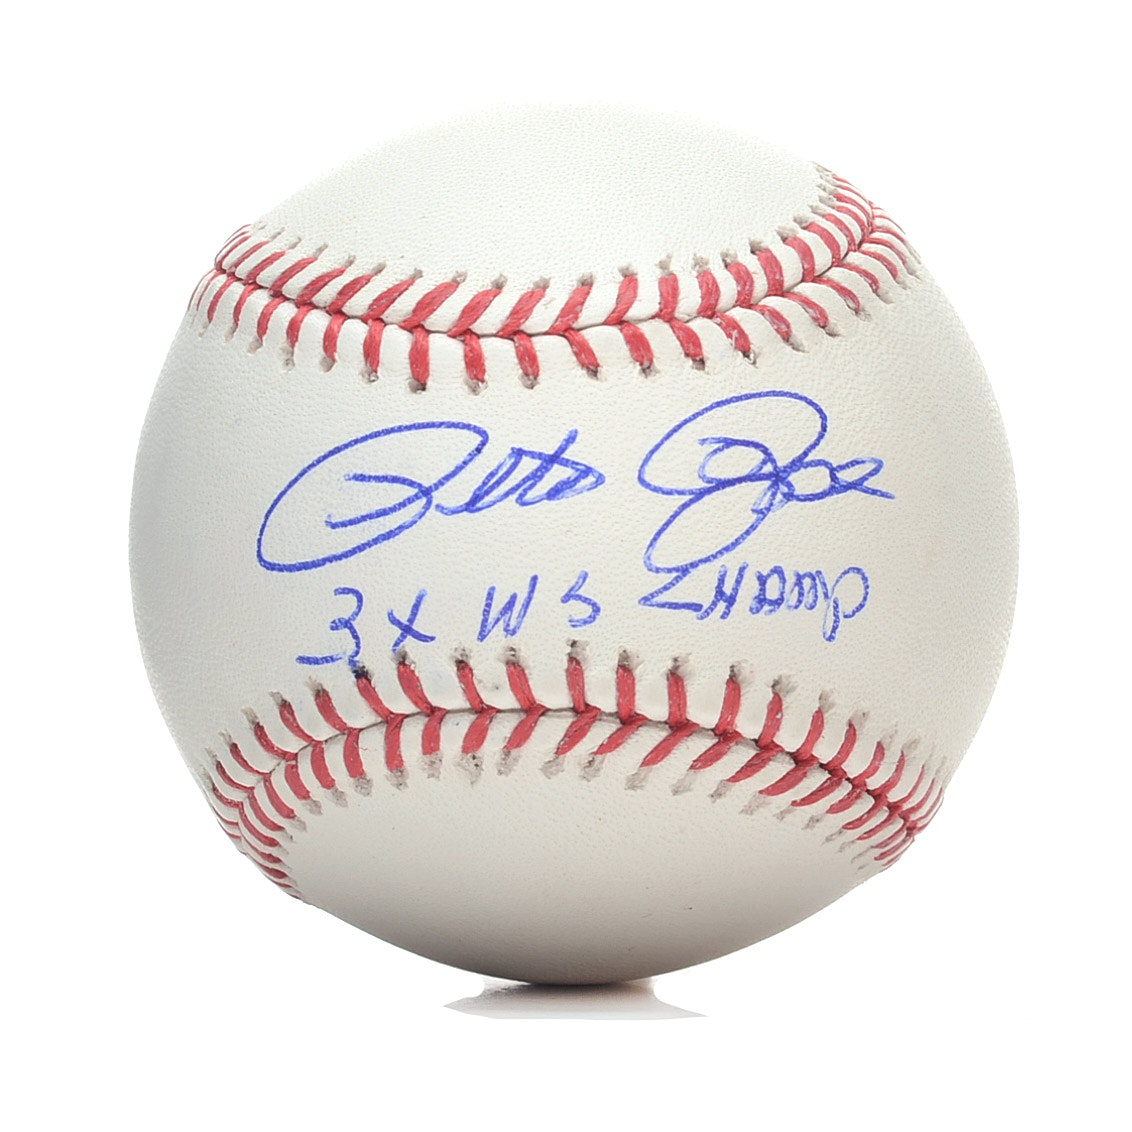 Pete Rose Autographed and Inscribed Baseball  COA